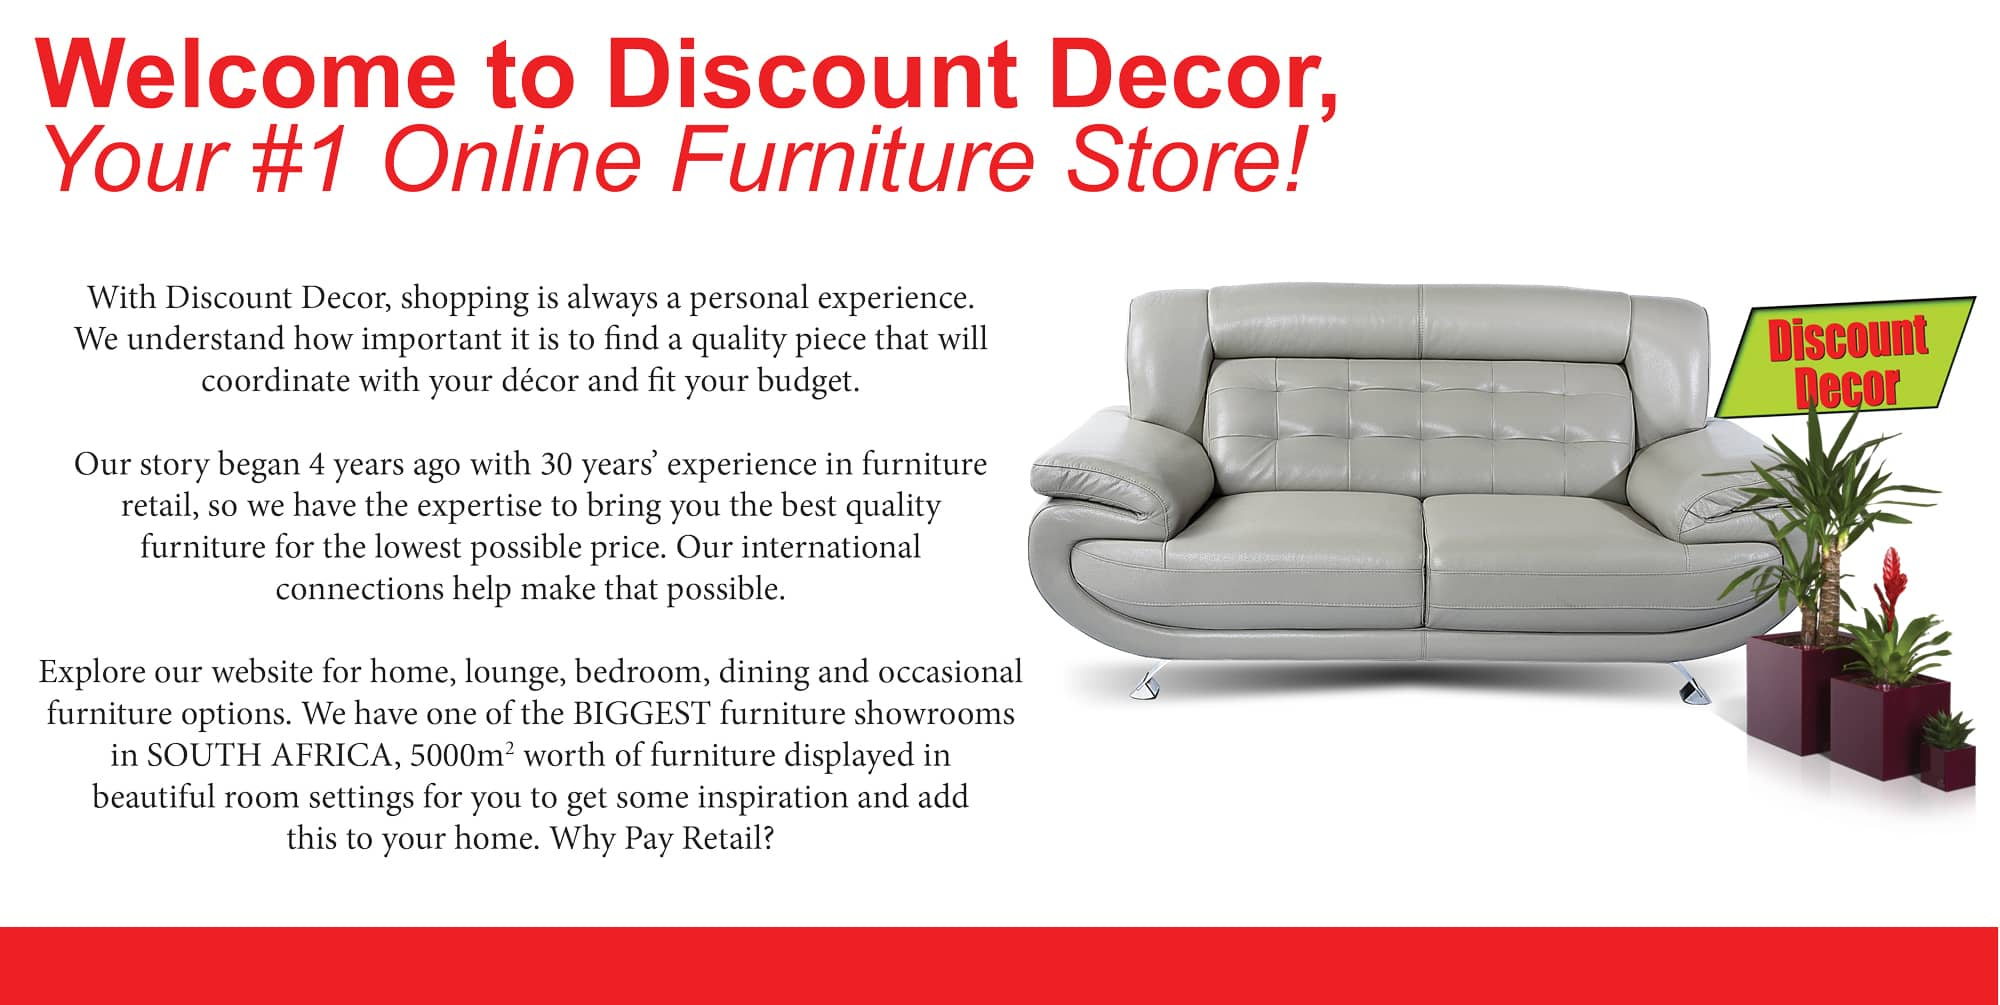 Home decor store online discount decor cheap mattresses for Affordable home decor online